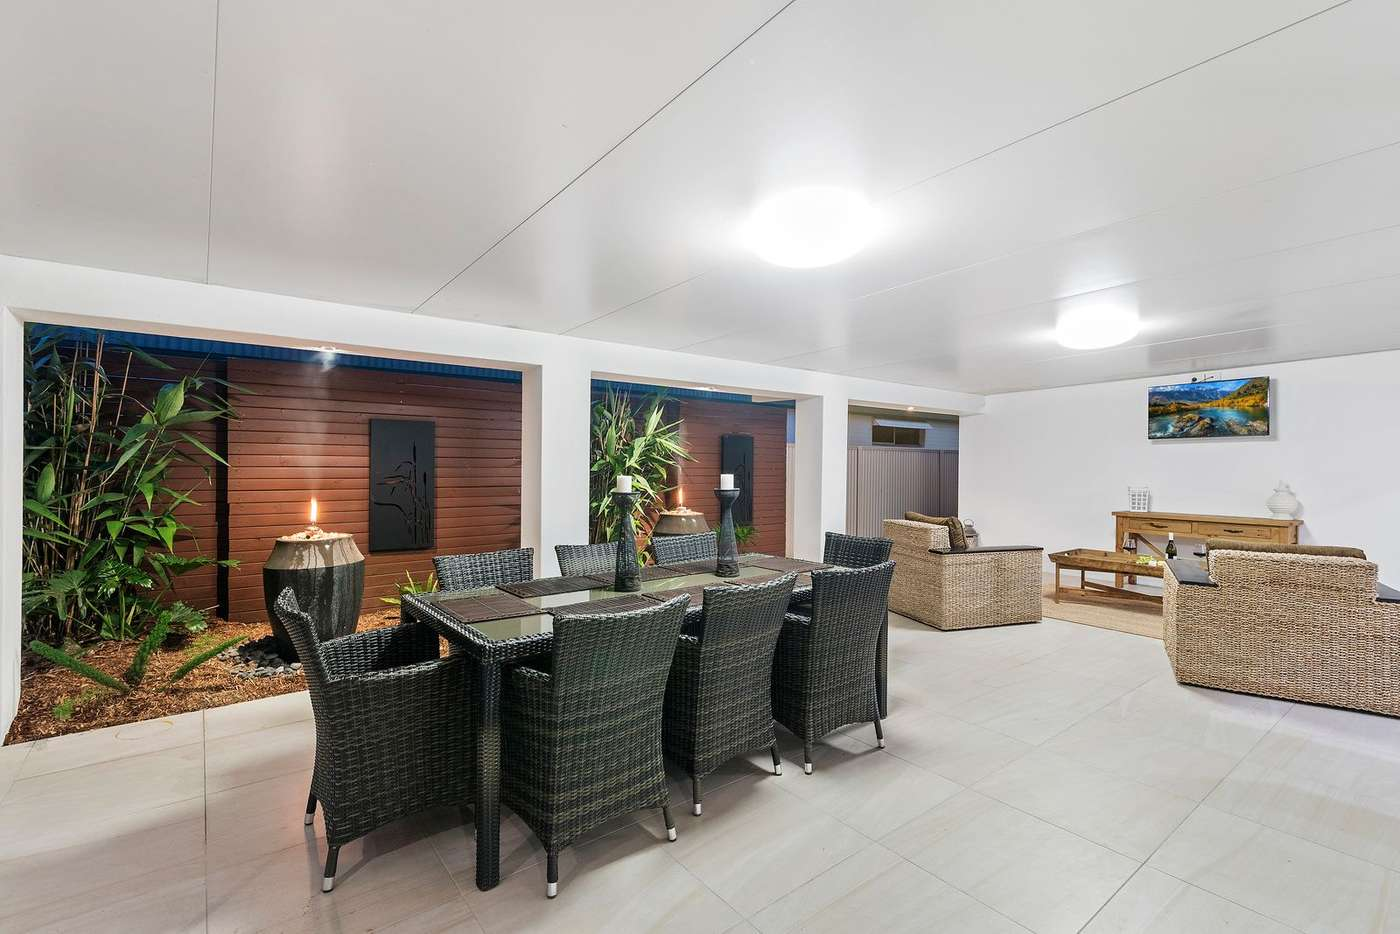 Fifth view of Homely house listing, 55 Mallawa Drive, Palm Beach QLD 4221